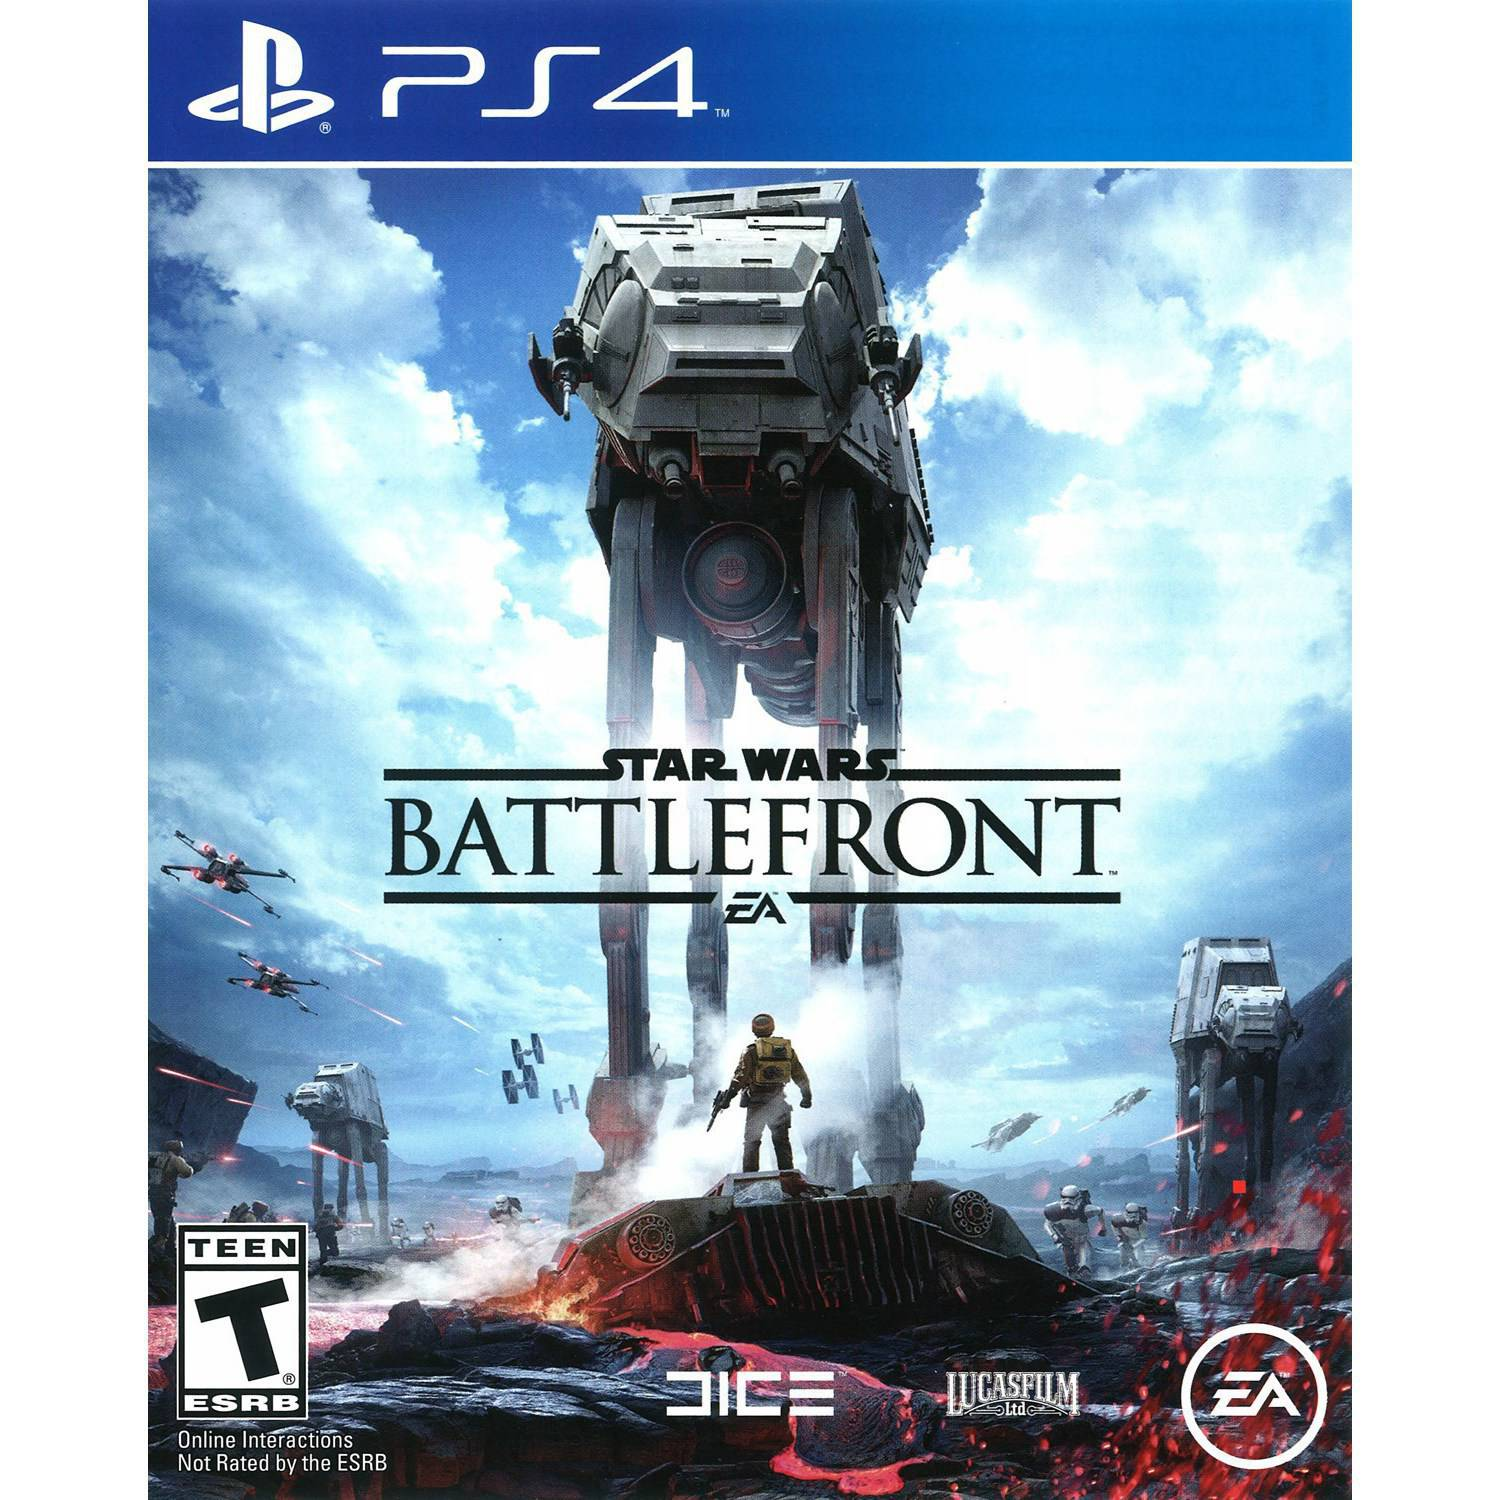 Star Wars Battlefront (Playstation 4) Used by EA Digital Illusions Creative Entertainment AB (DICE)